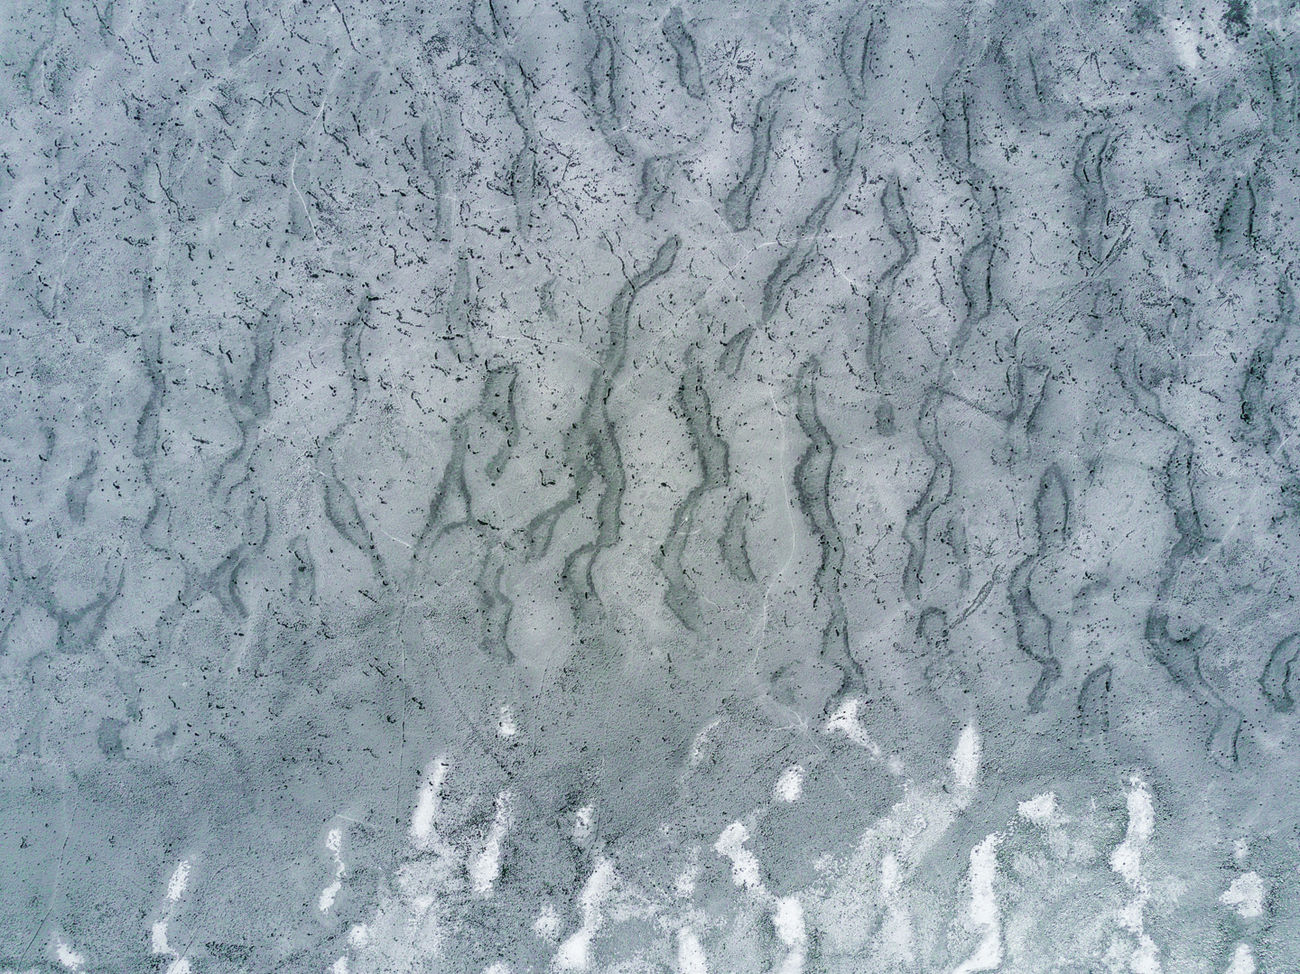 Abstract Aerial Aerial View Backgrounds Full Frame Ice Lake Nature No People Snow Spring Water White